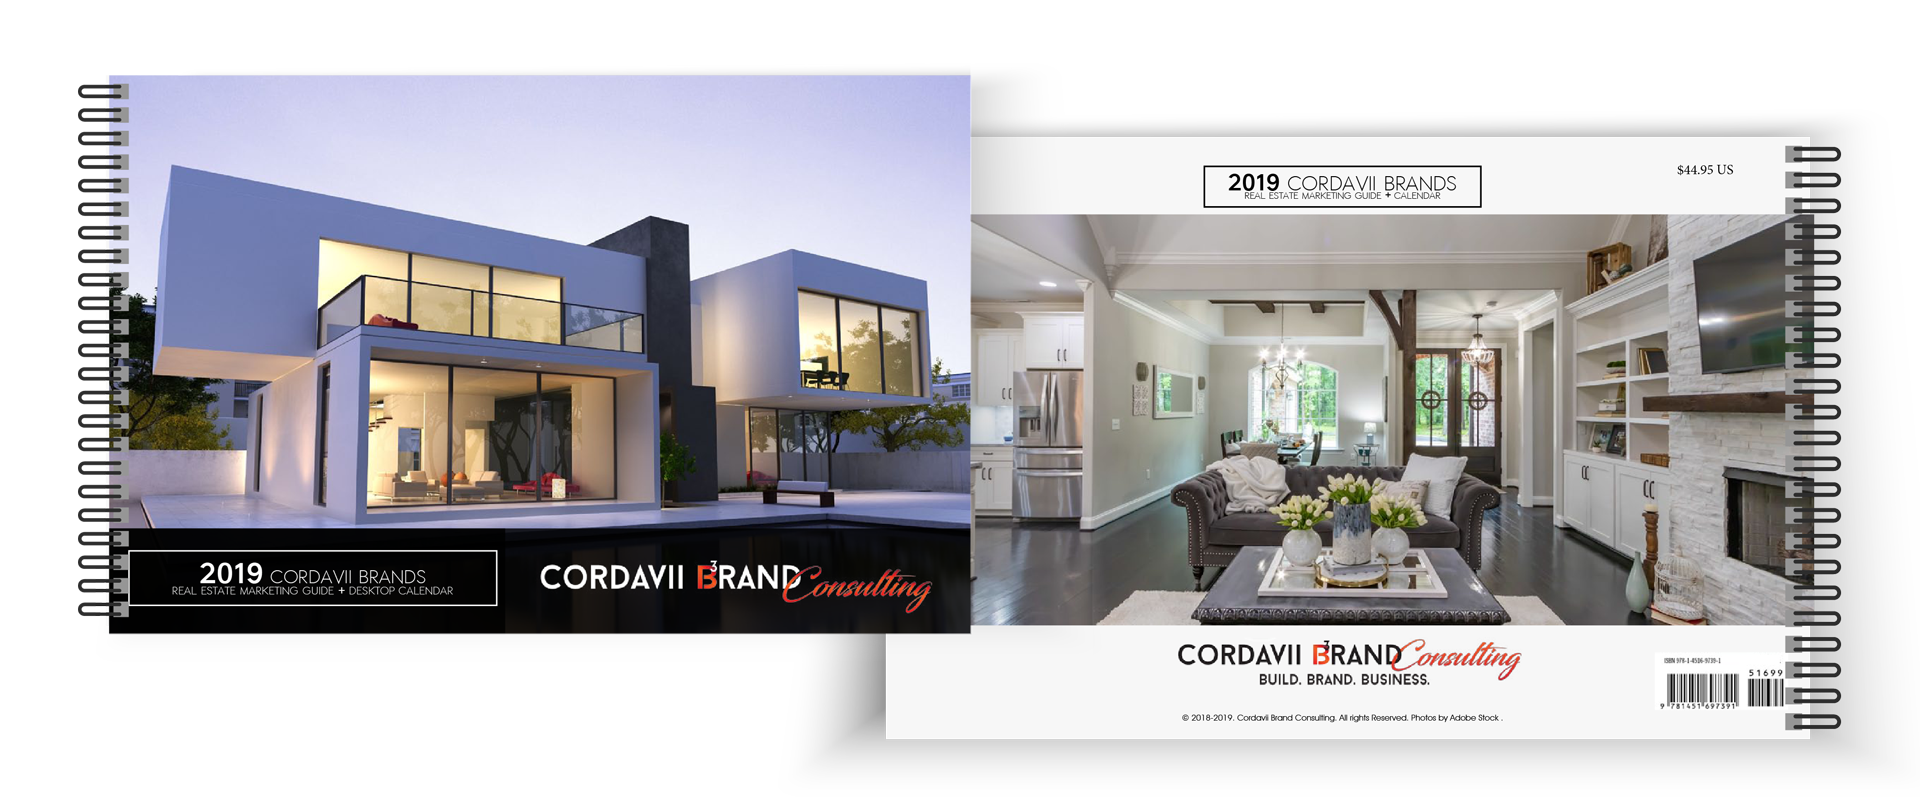 Download Cordavii Brands Real Estate Marketing Calendar